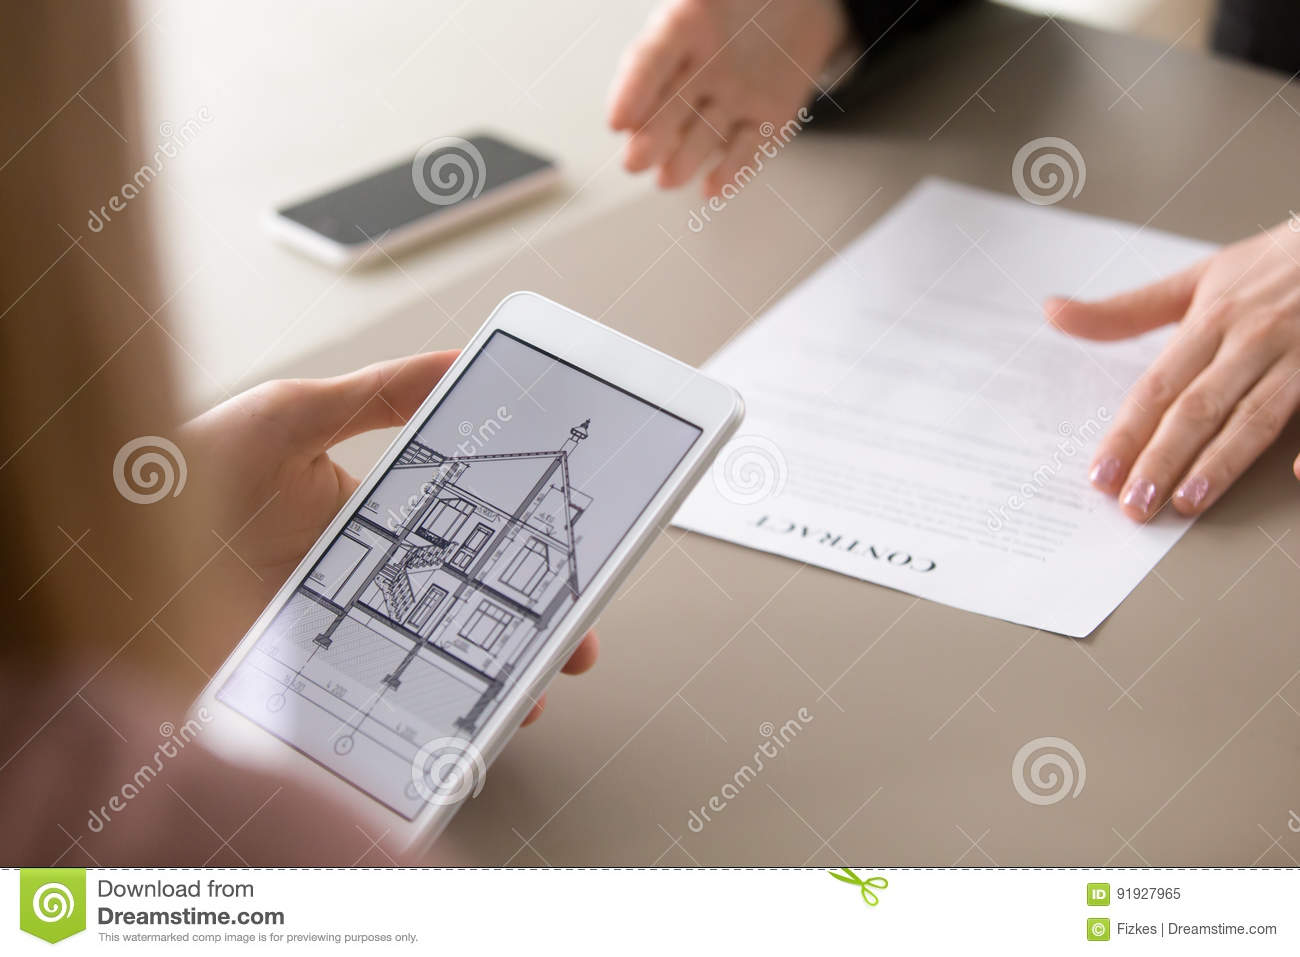 Real Estatecy Clients Holding Tablet Lo Ng At Architectural Plan Of Dream House Considering Mort E Loan For Buying Suburban Housing